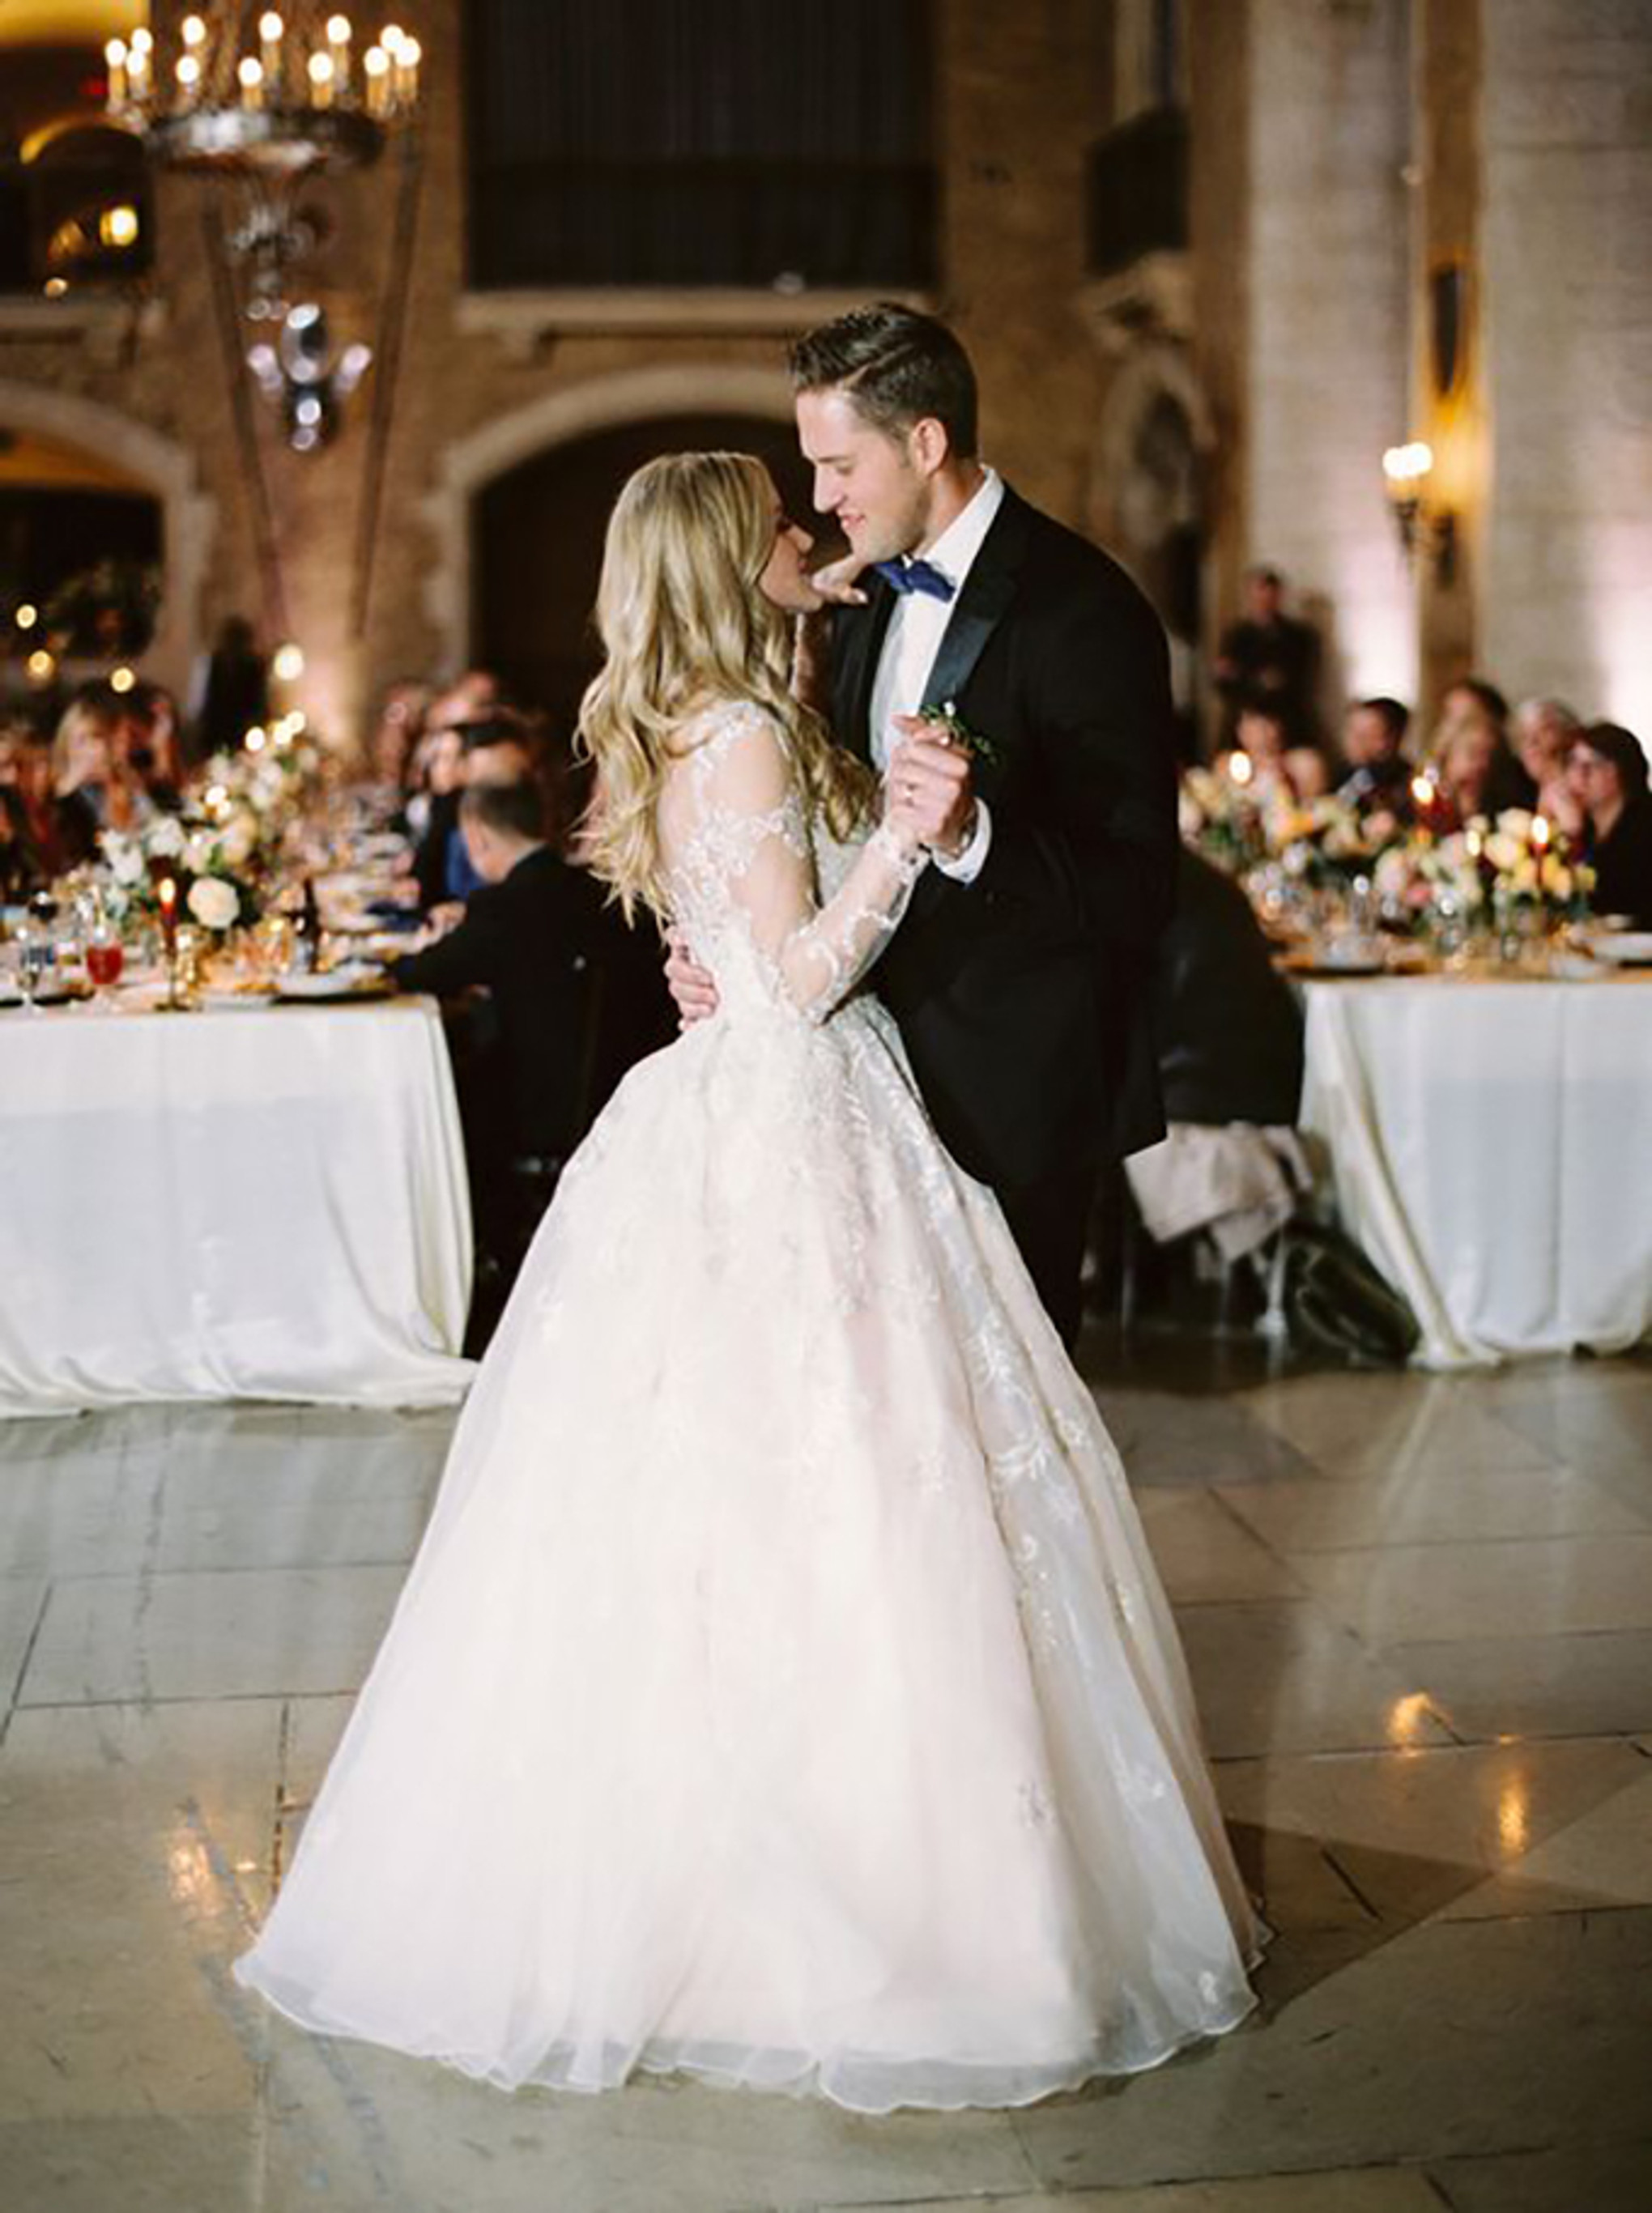 Sensational The Ultimate Disney Love Songs Wedding Playlist Bridestory Home Interior And Landscaping Eliaenasavecom